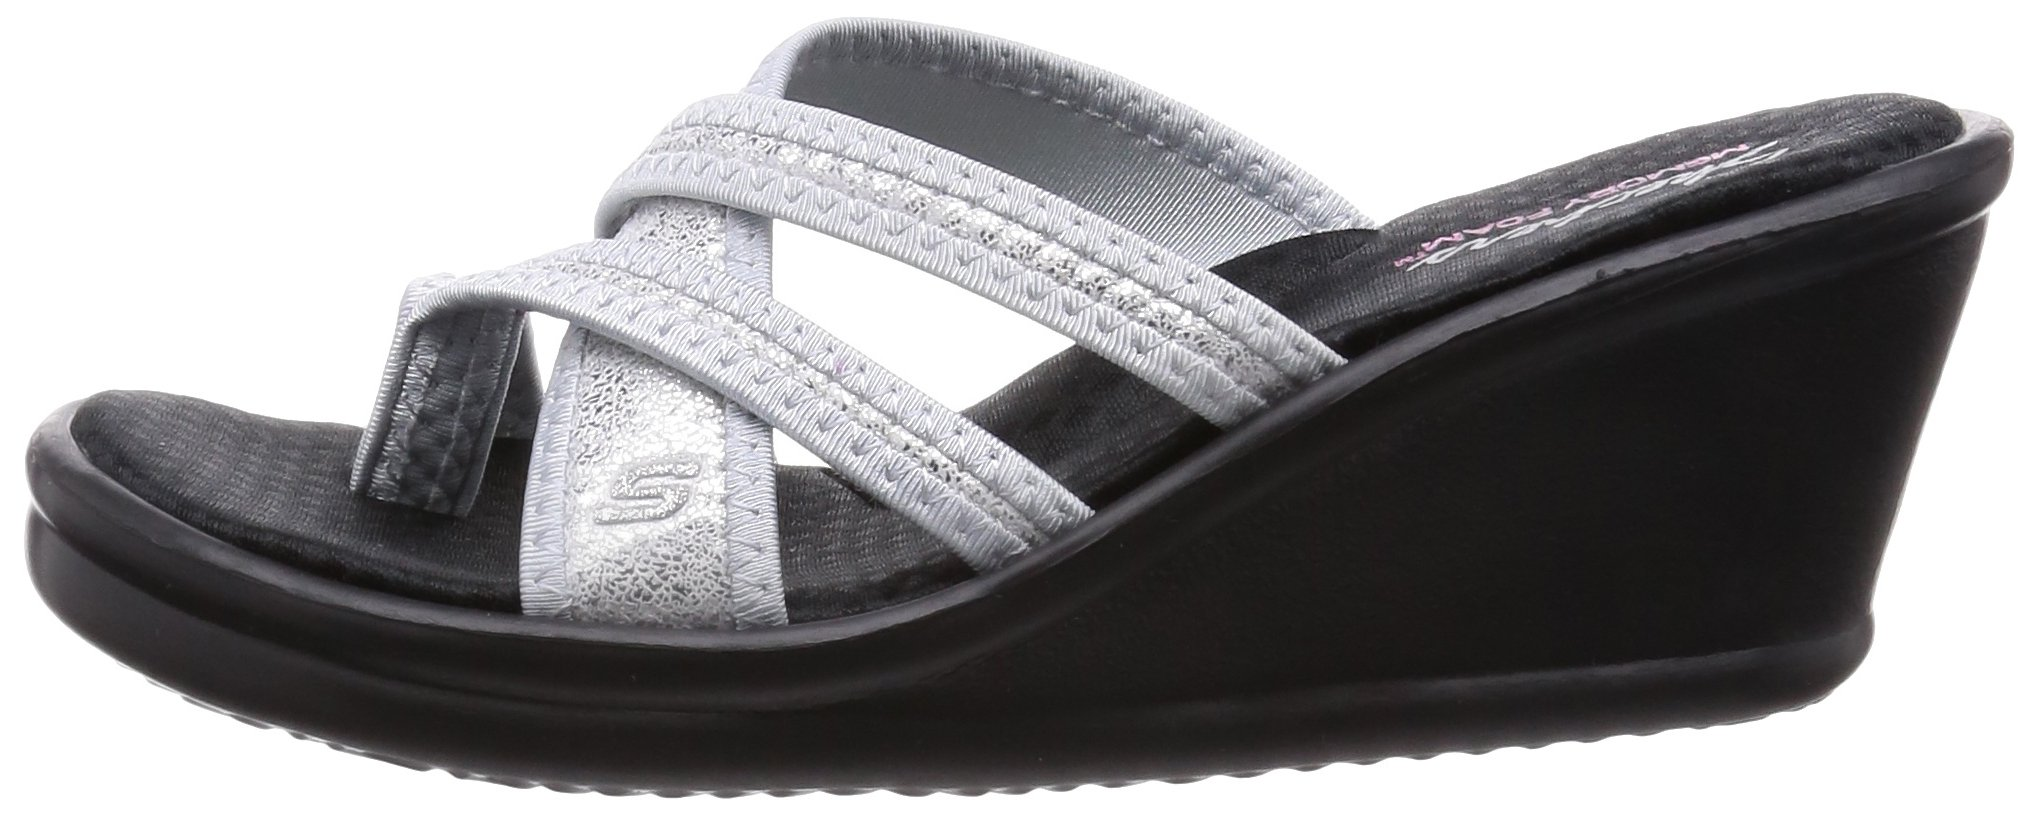 Skechers Cali Women's Rumblers-Young at Heart Wedge Sandal,Silver Sparkle,7 M US by Skechers (Image #5)